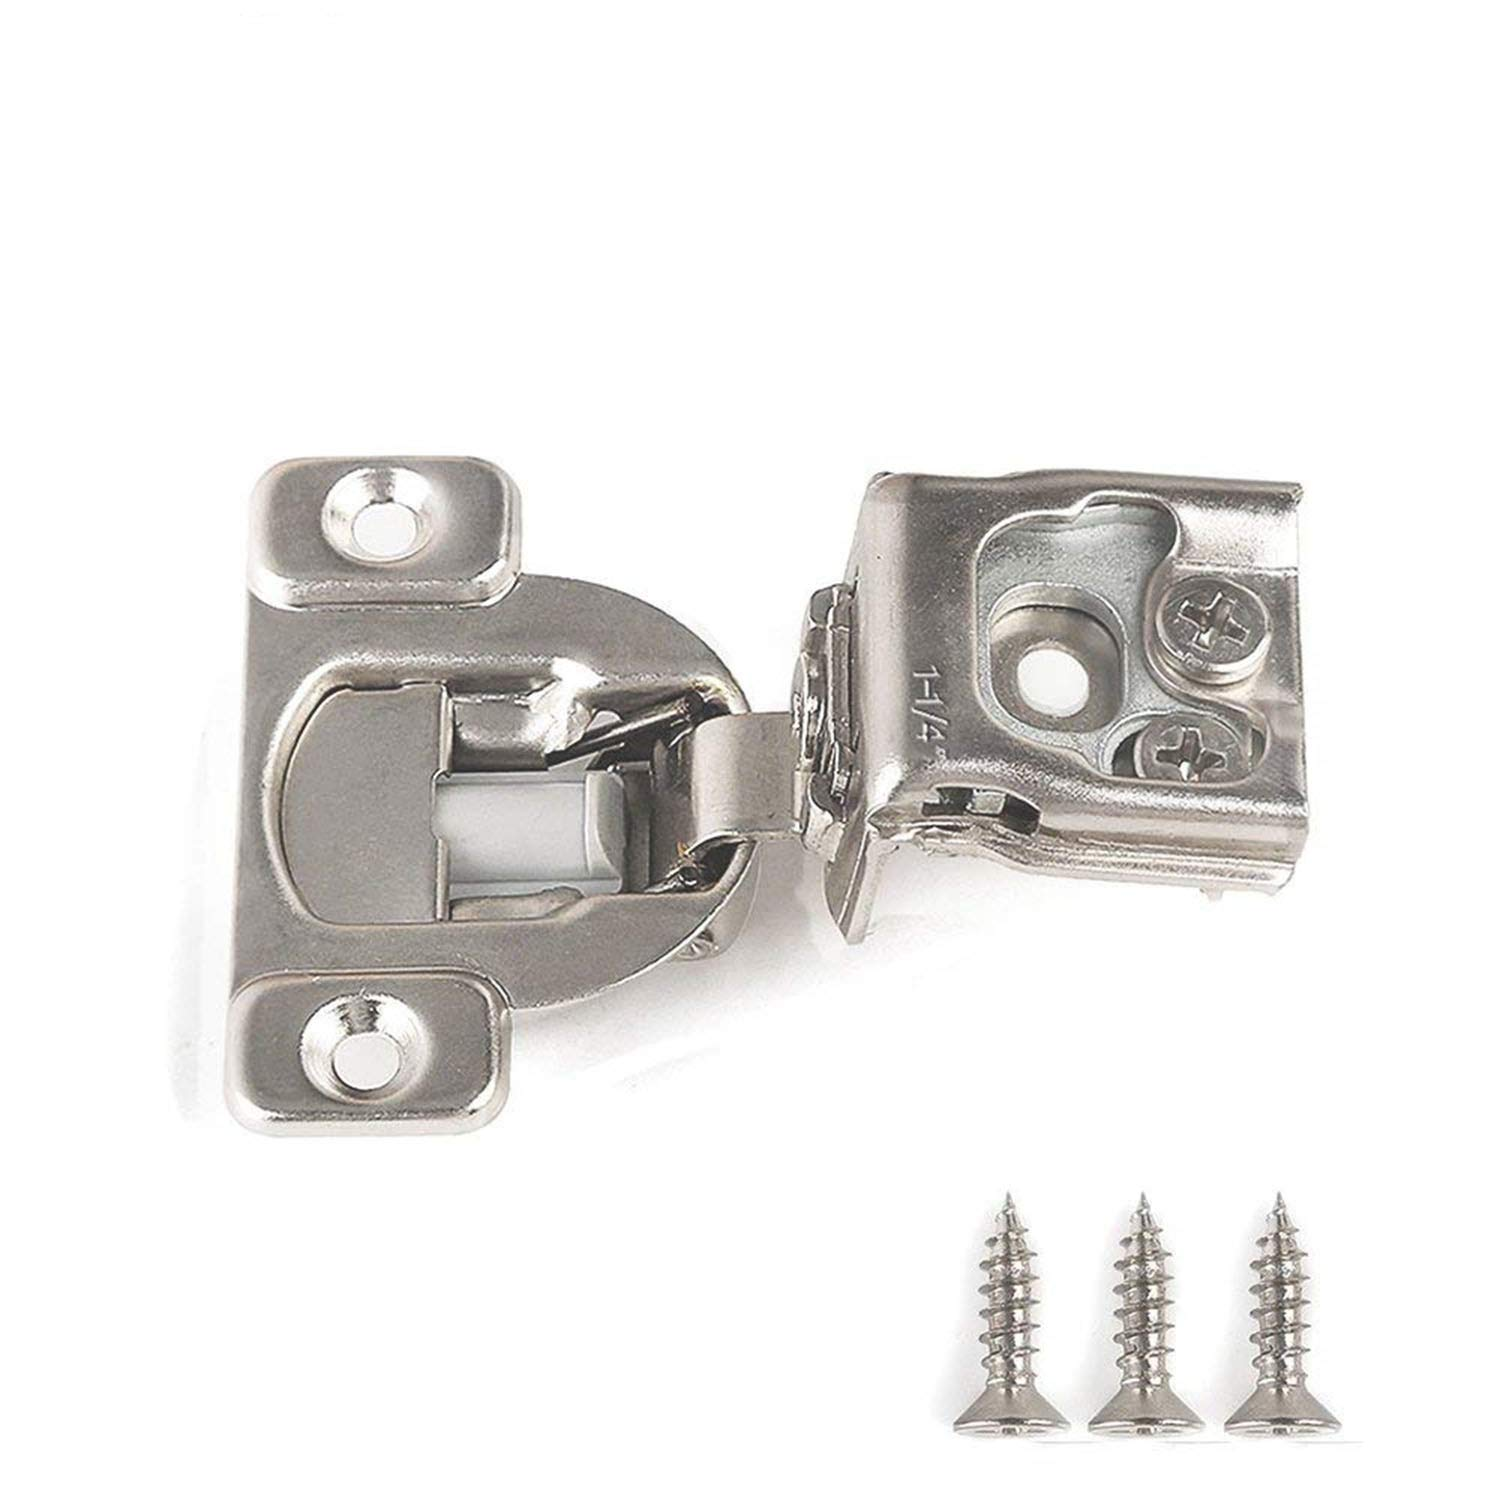 Soft Close Hinge 1-1/4'' Compact Overlay Hinges for Frameless Face Frame Cabinet Nickel Plated - 25 Pack (25, 1-1/4'')